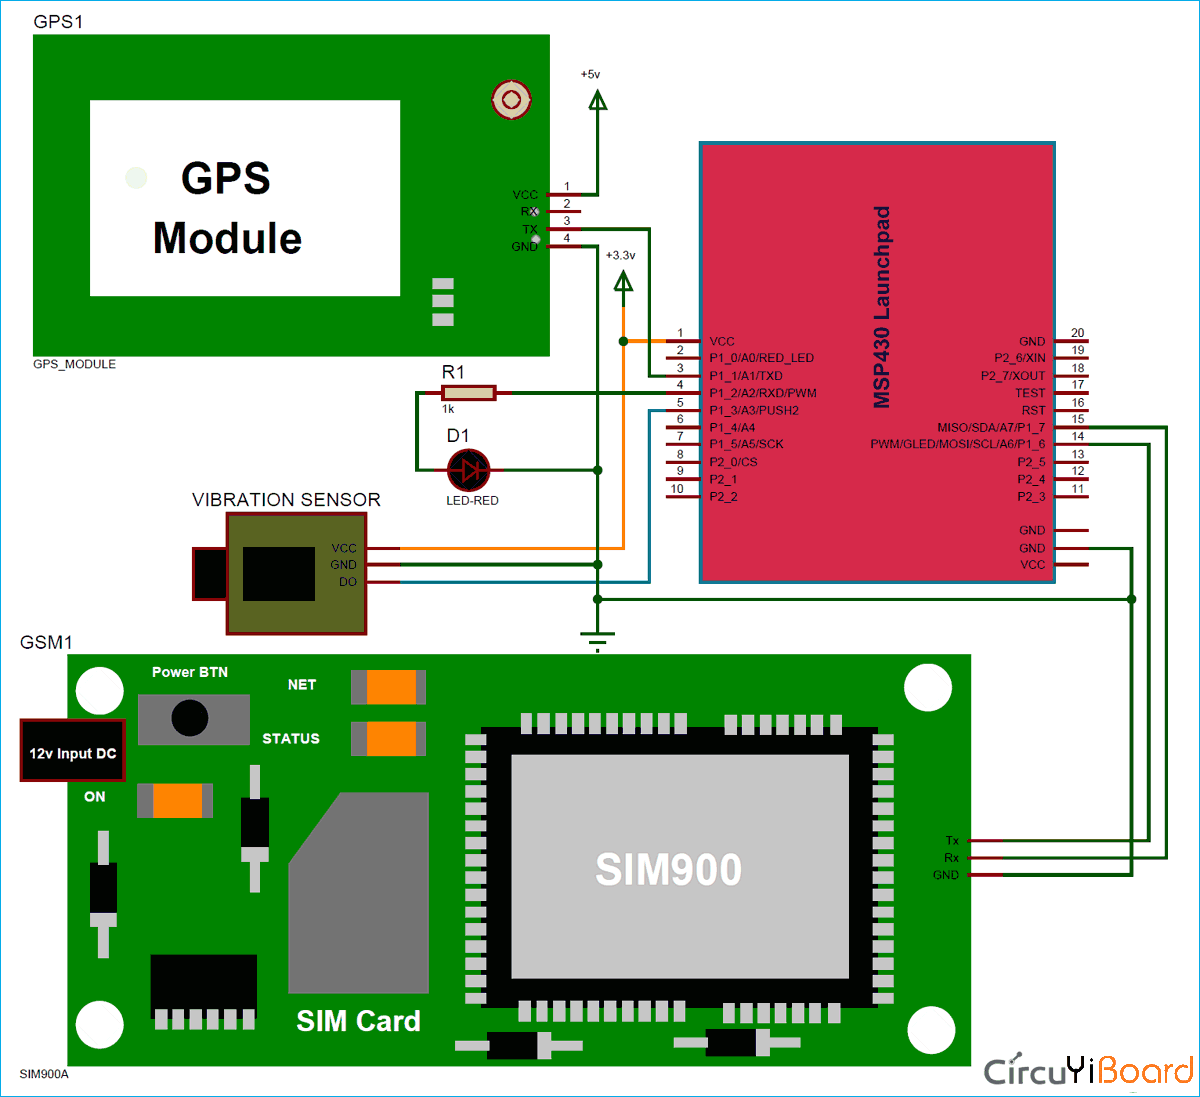 Circuit-Diagram-for-Vehicle-Tracking-and-Accident-Alert-System-using-MSP430-and-GPS.png